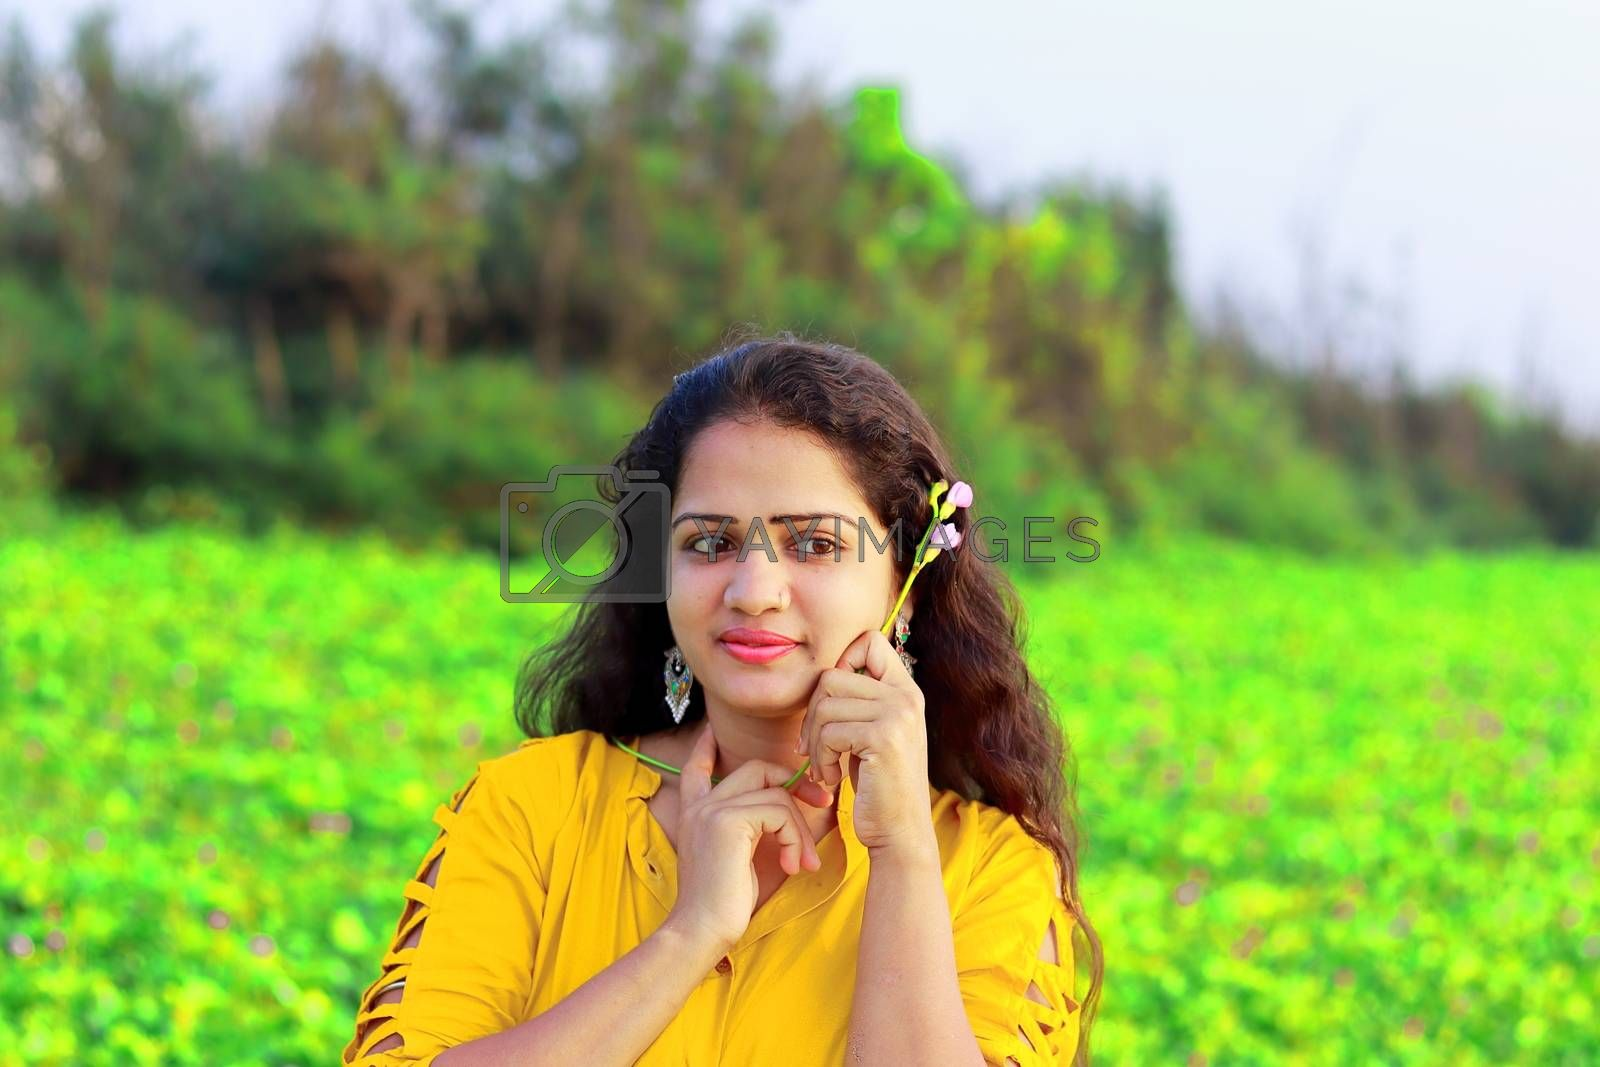 nature lover, a stylish fair girl with blur green background